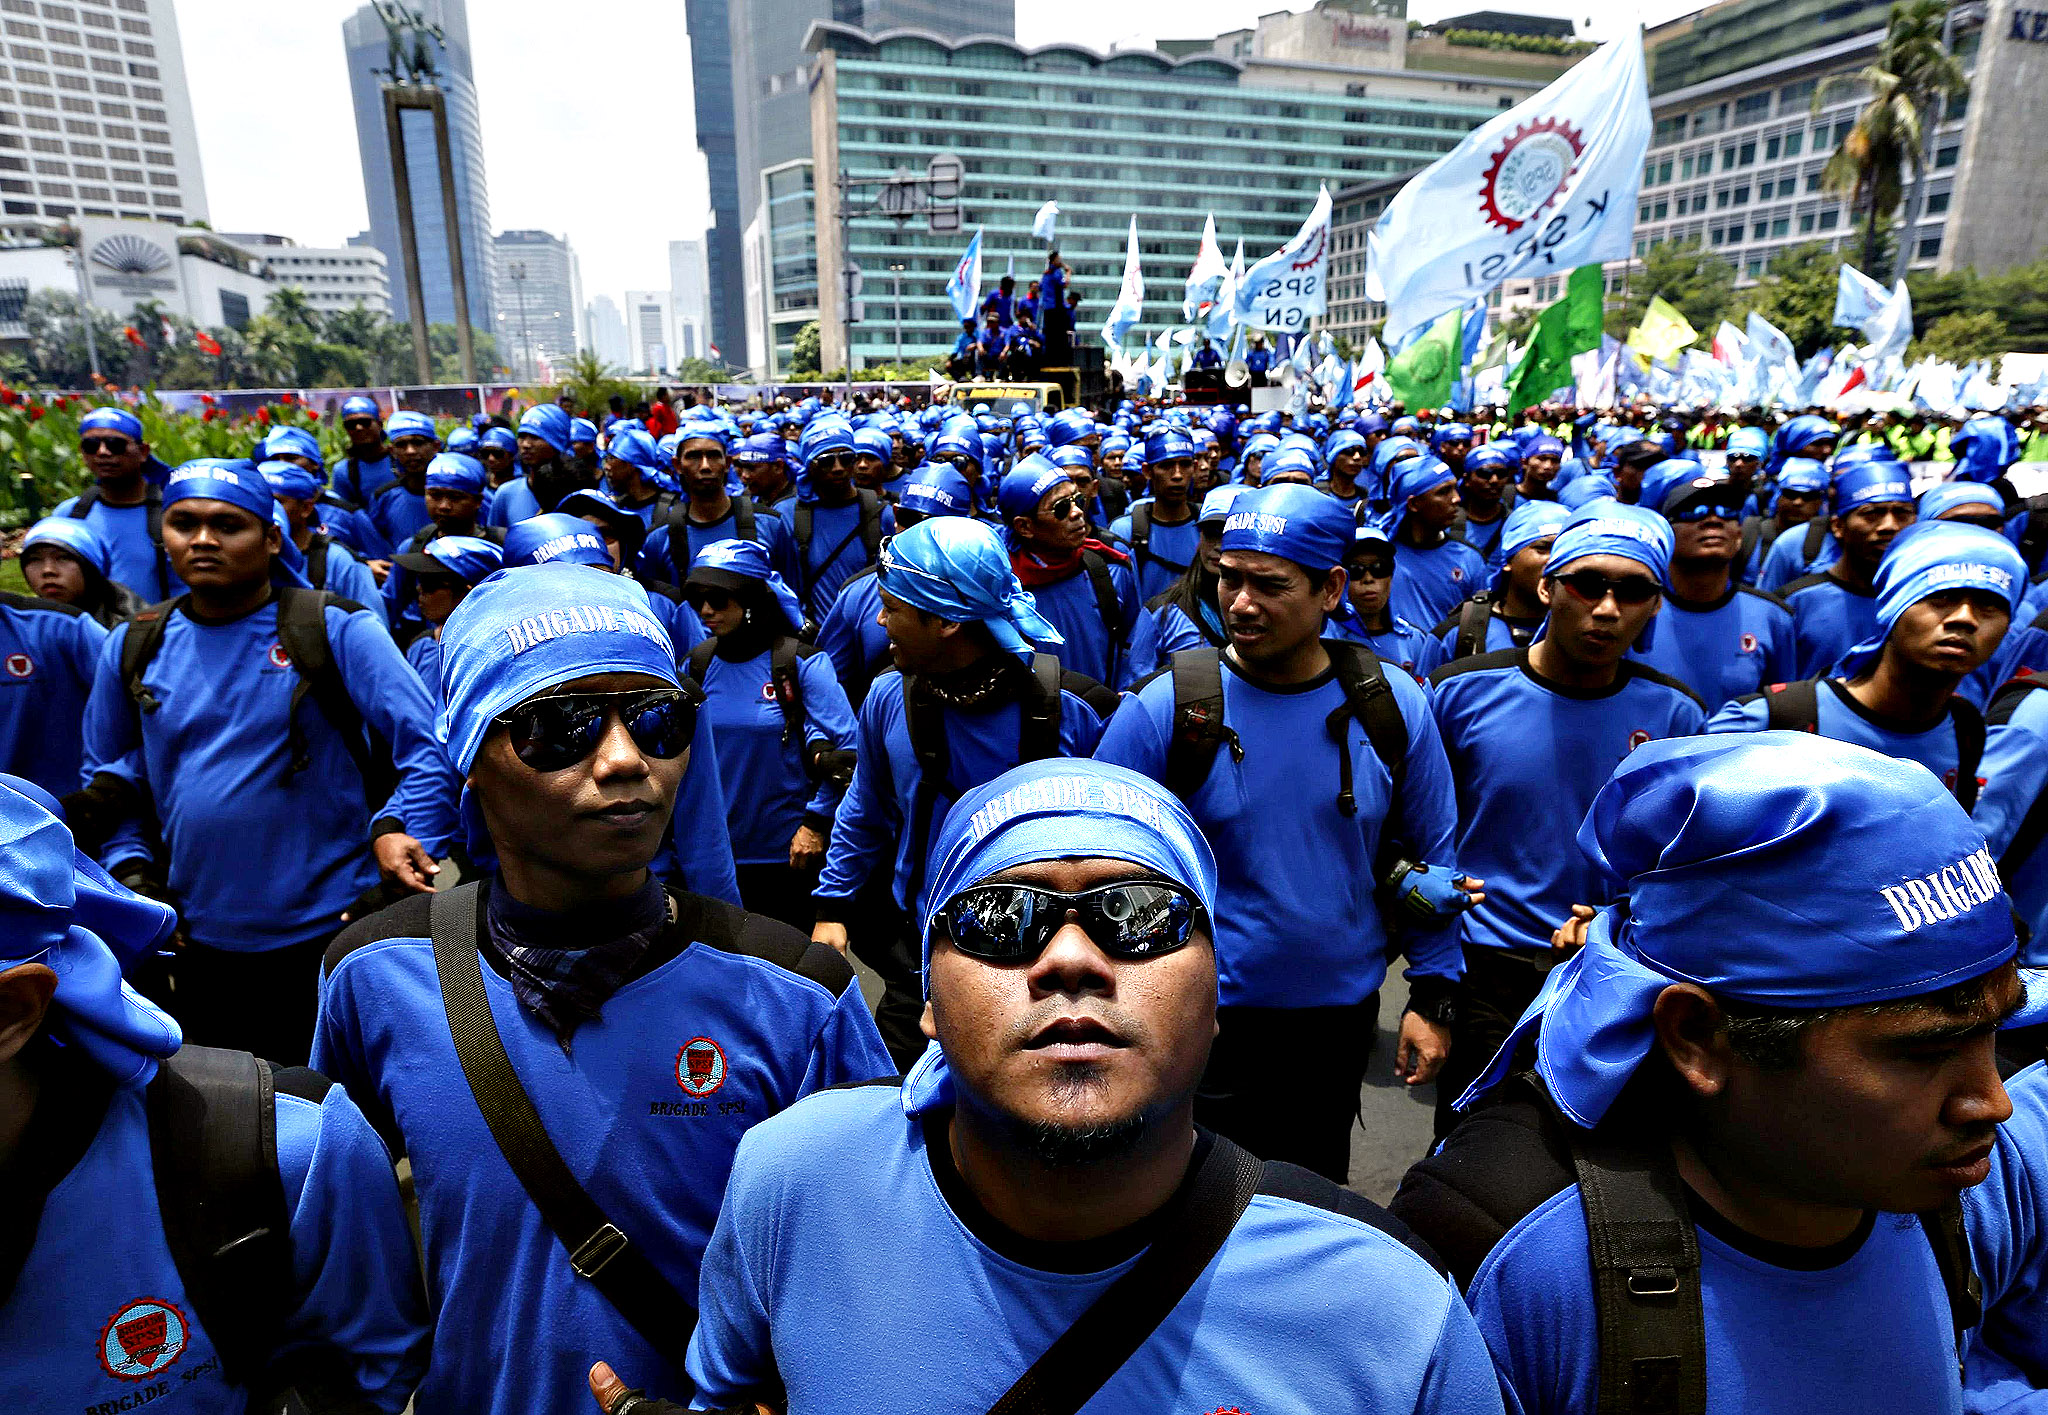 Union workers from Serikat Pekerja Seluruh Indonesia (SPSI) walk during a protest at the business district in Jakarta, October 17, 2013. Almost one thousand workers participated in the protest, demanding wage raises and objecting to outsourcing, according to local media on Thursday.